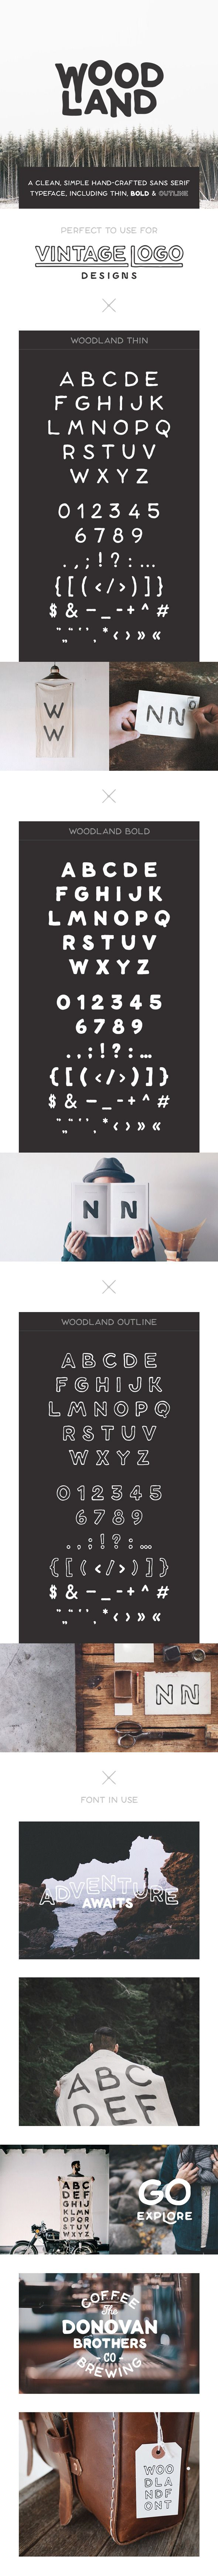 Woodland is a simple and clean hand-crafted sans serif typeface, including three weights: thin, bold and outline. Download: http://graphicriver.net/item/woodland-font/10593502?ref=ksioks